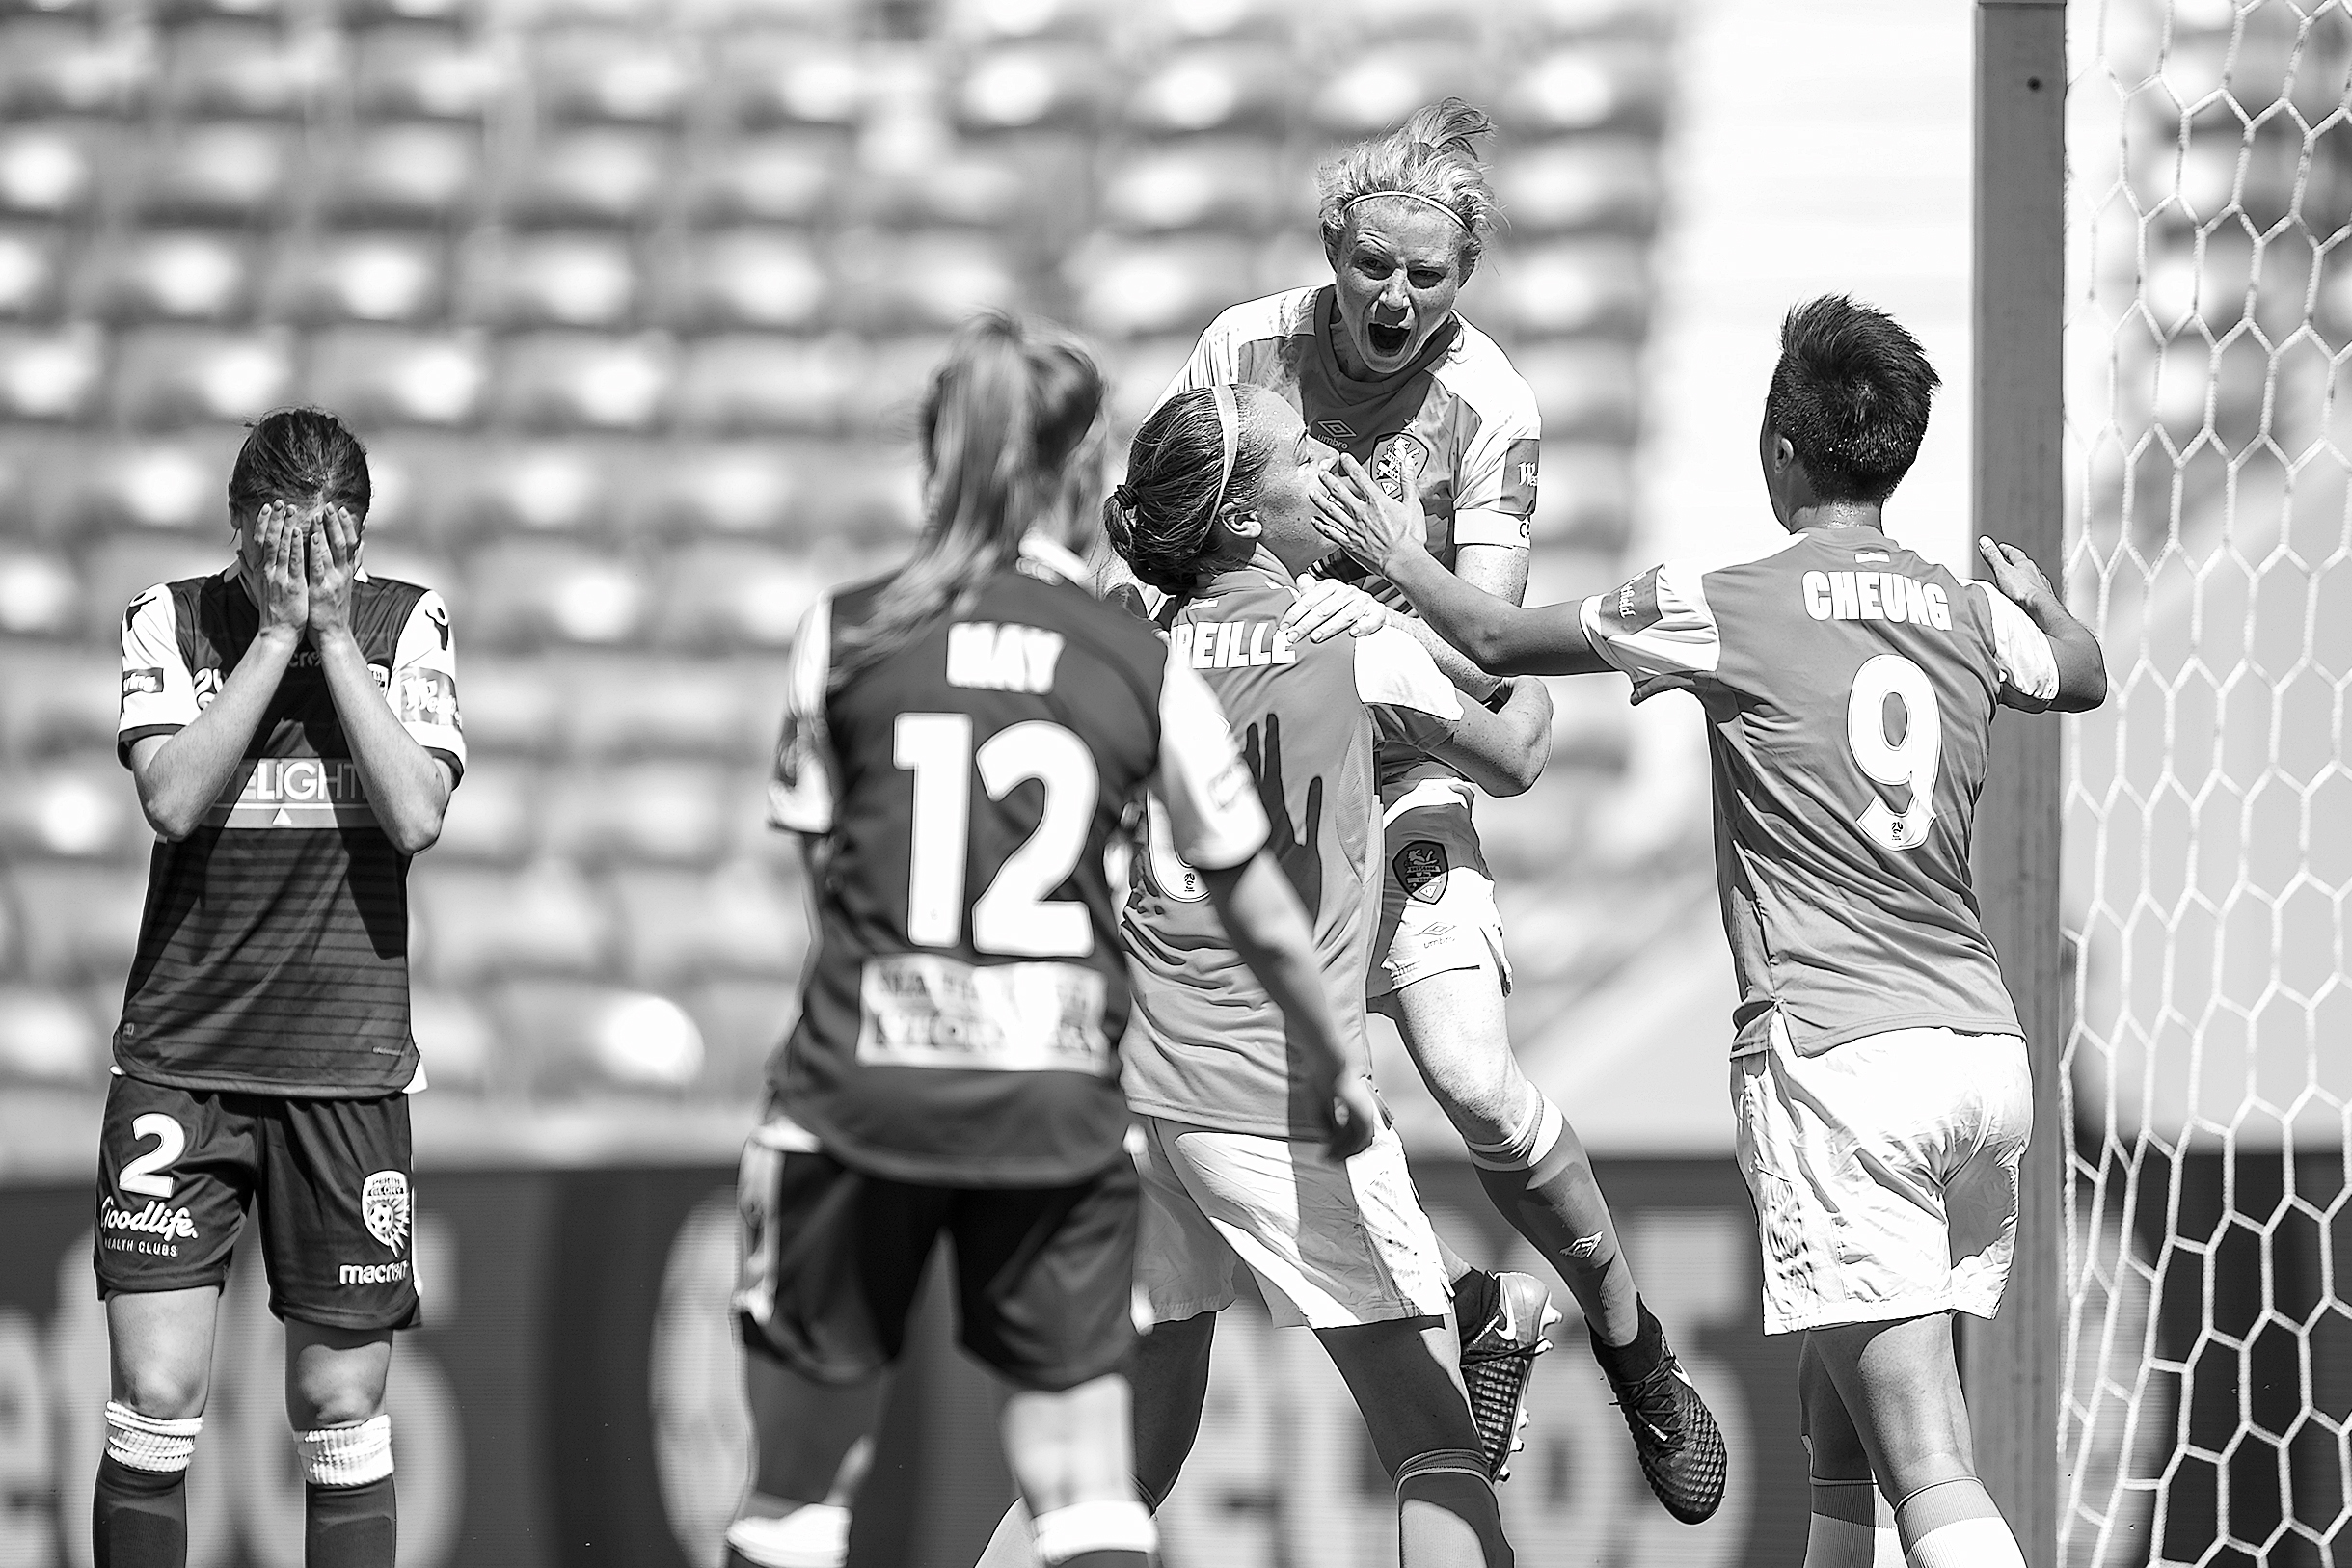 Westfield W-League Rd 2 - Brisbane Roar v Perth Glory